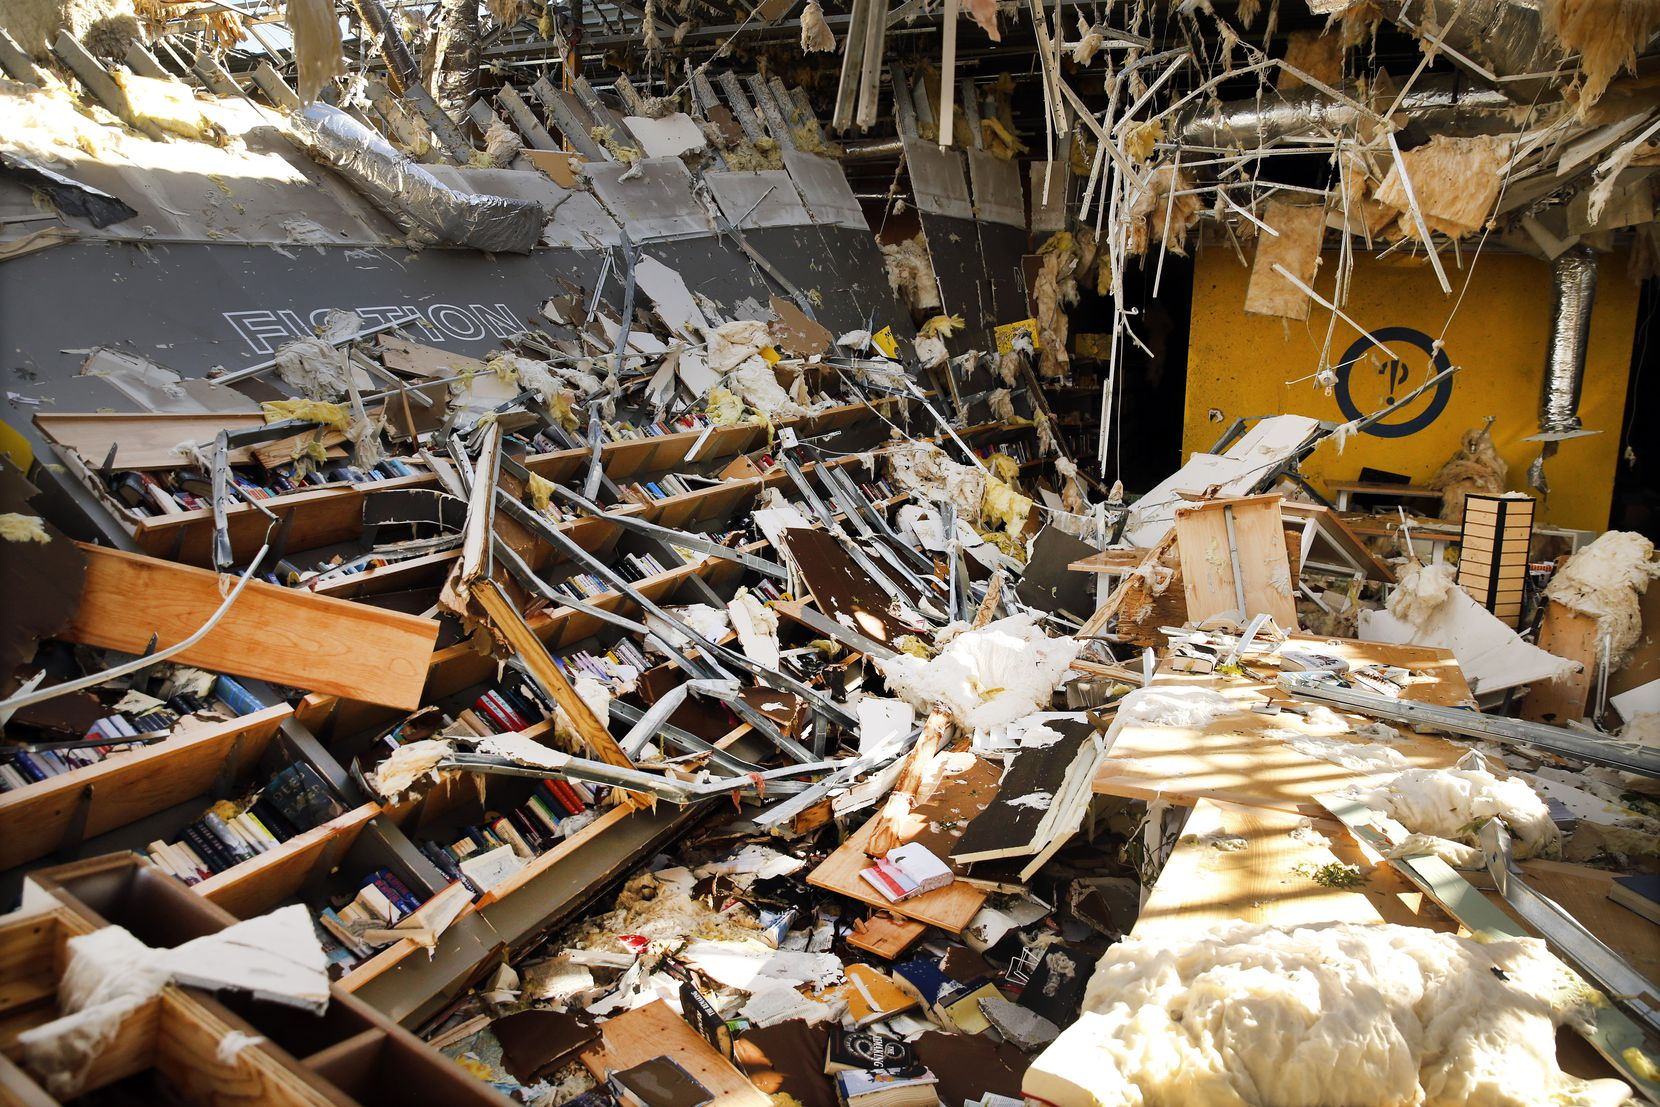 The interior of the Interabang Books store was demolished by a tornado Oct. 20, 2019, in the Preston Royal shopping center in Dallas.